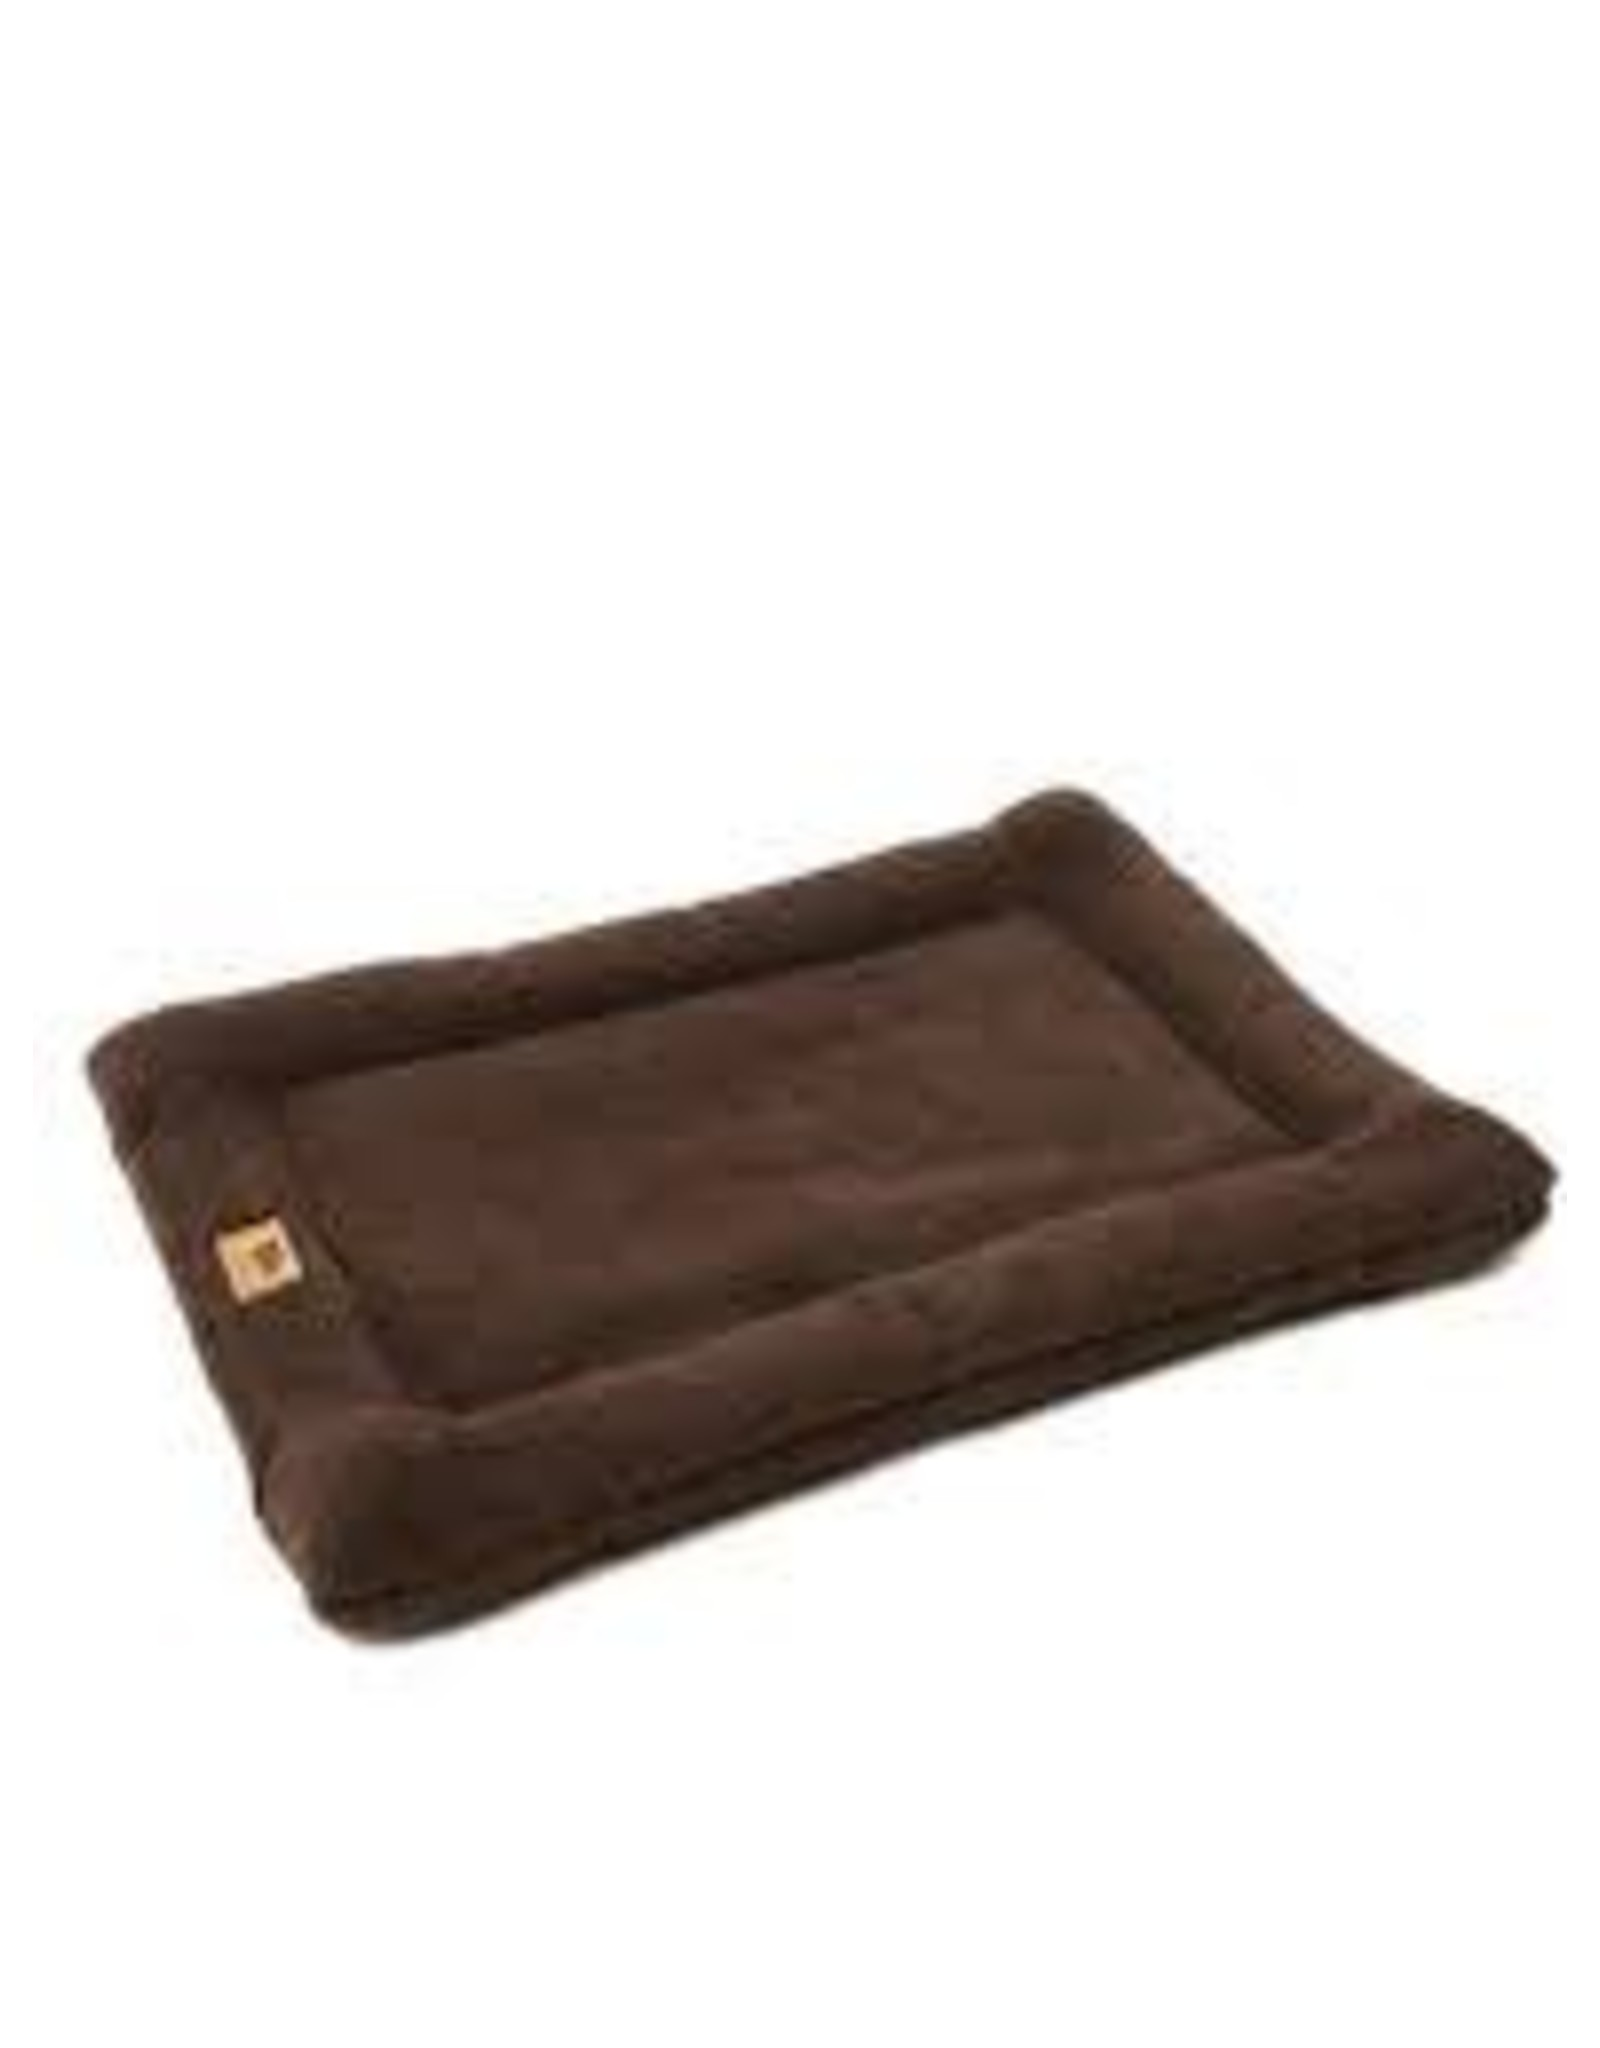 WEST PAW WEST PAW MONTANA NAP BED CHOCOLATE L 35x22